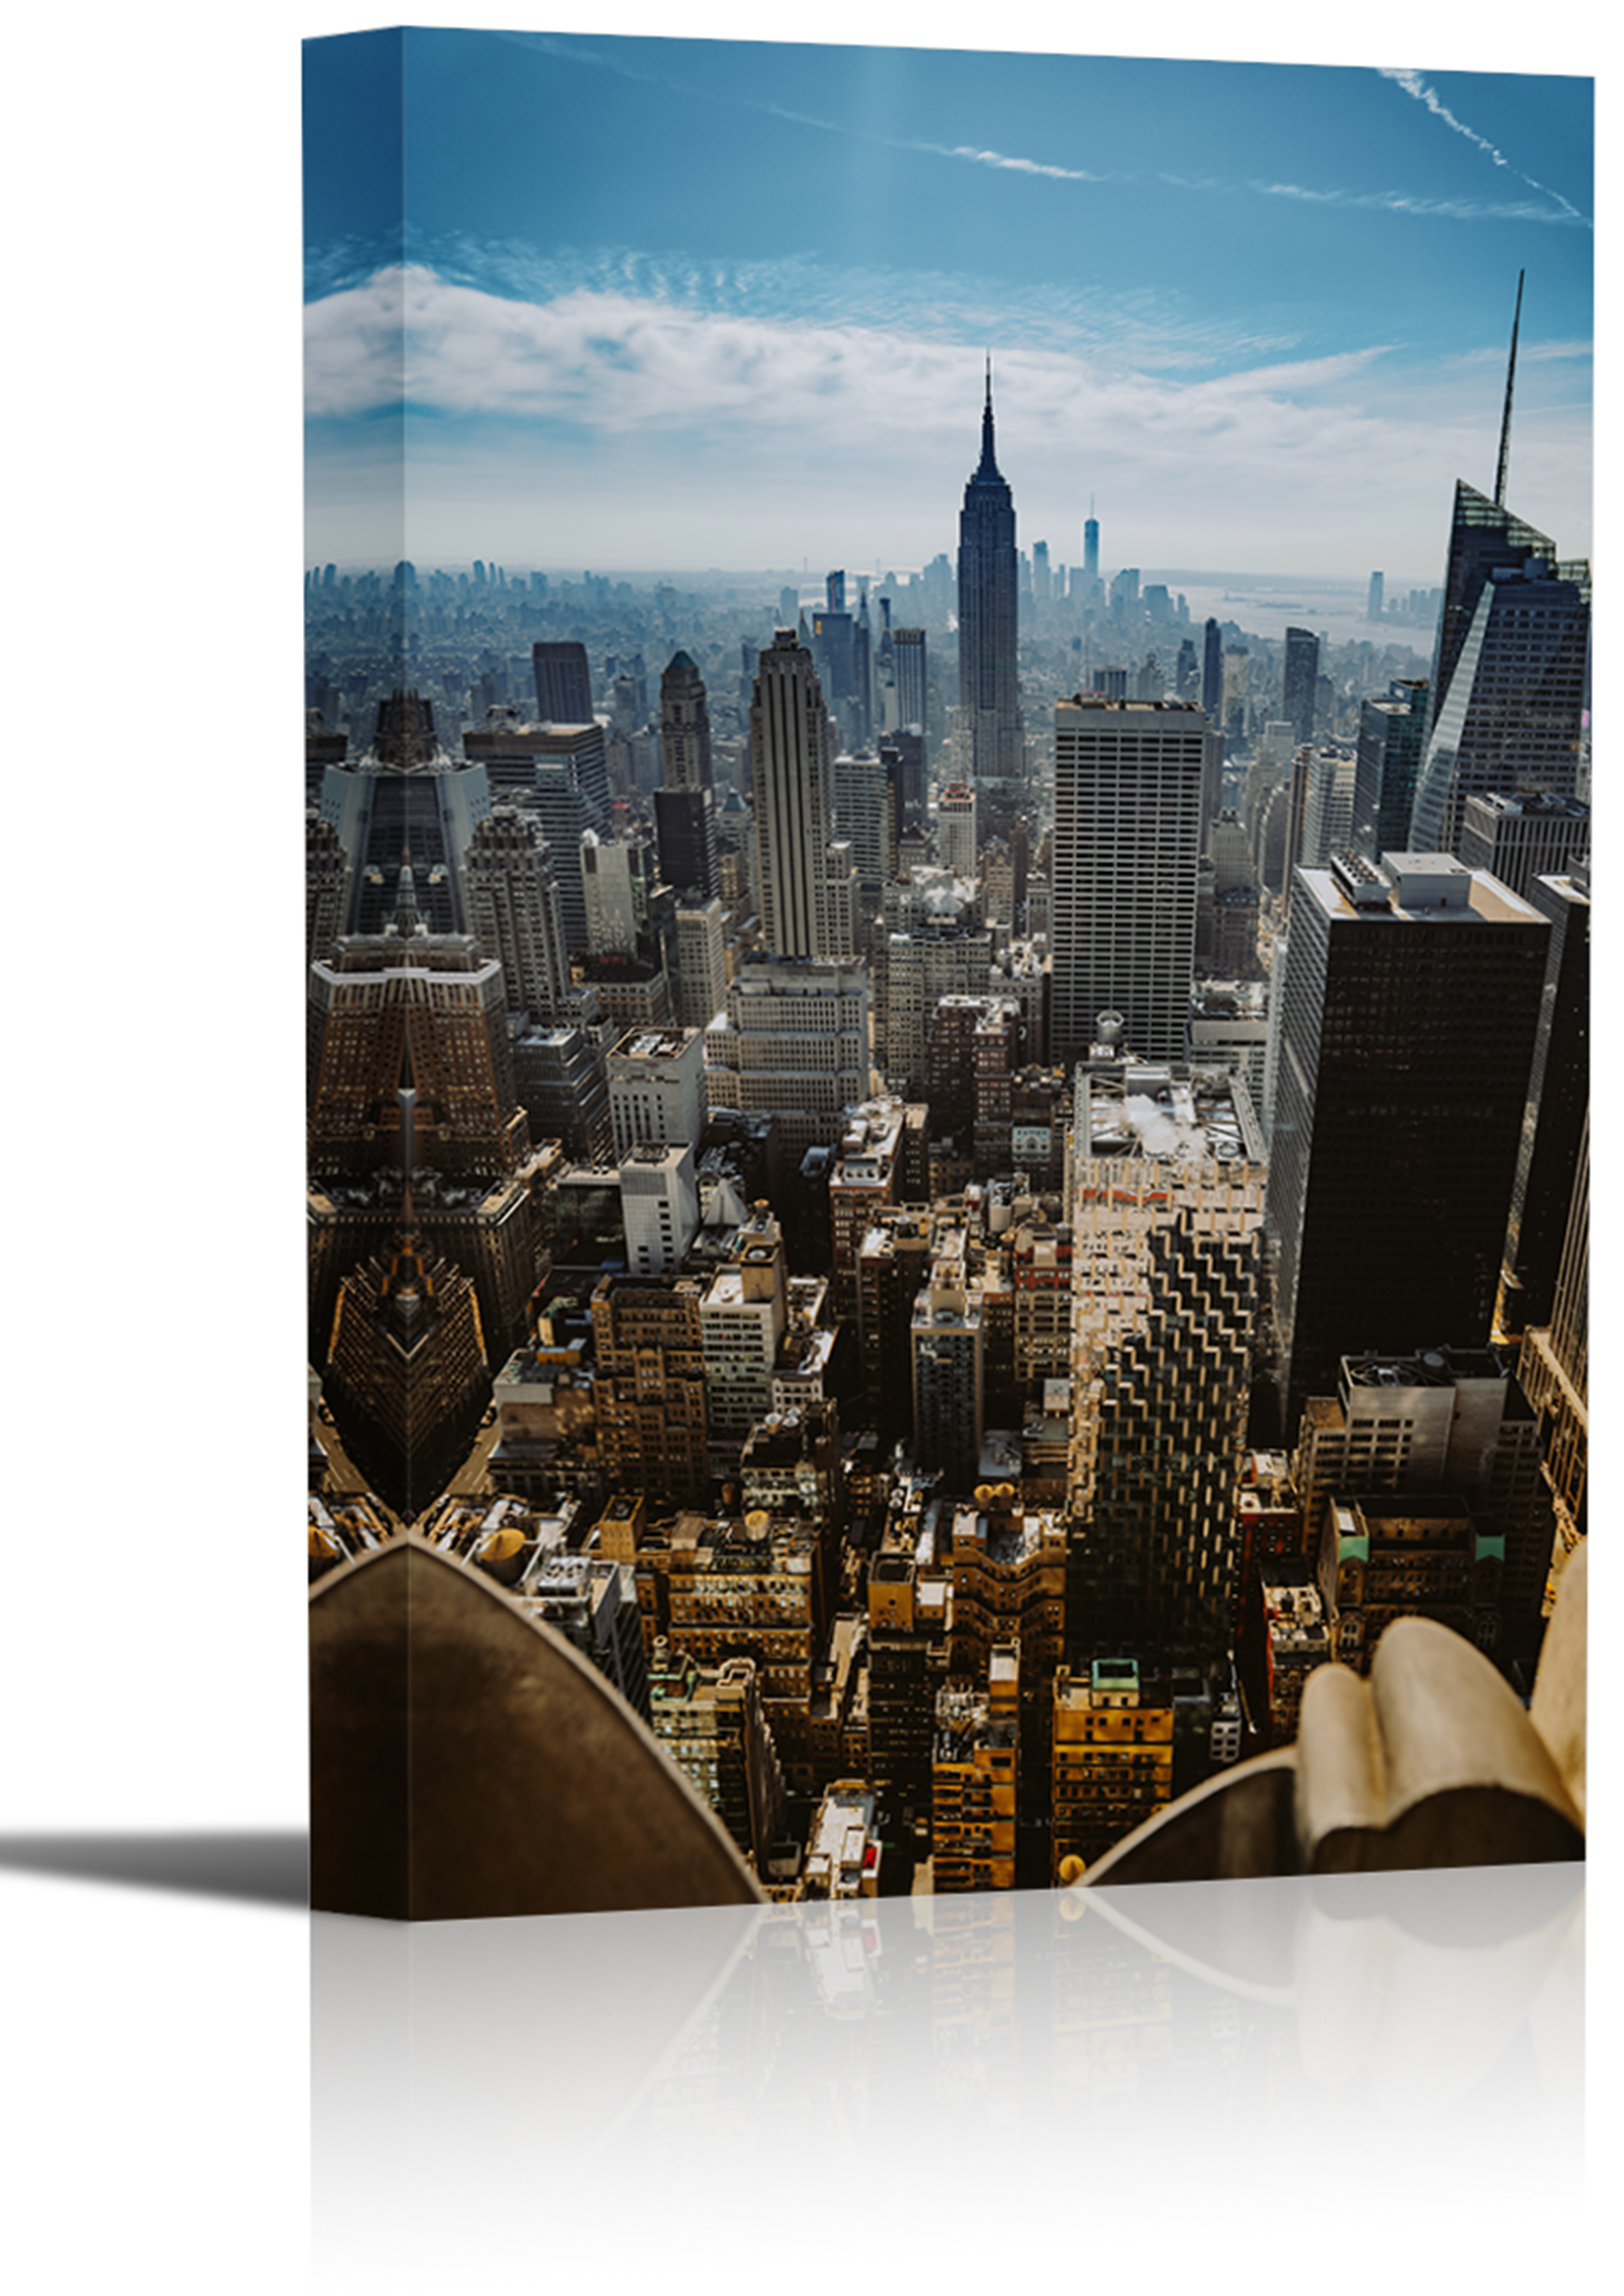 Top Of The Rock New York City Art Print Wall Decor Image Canvas